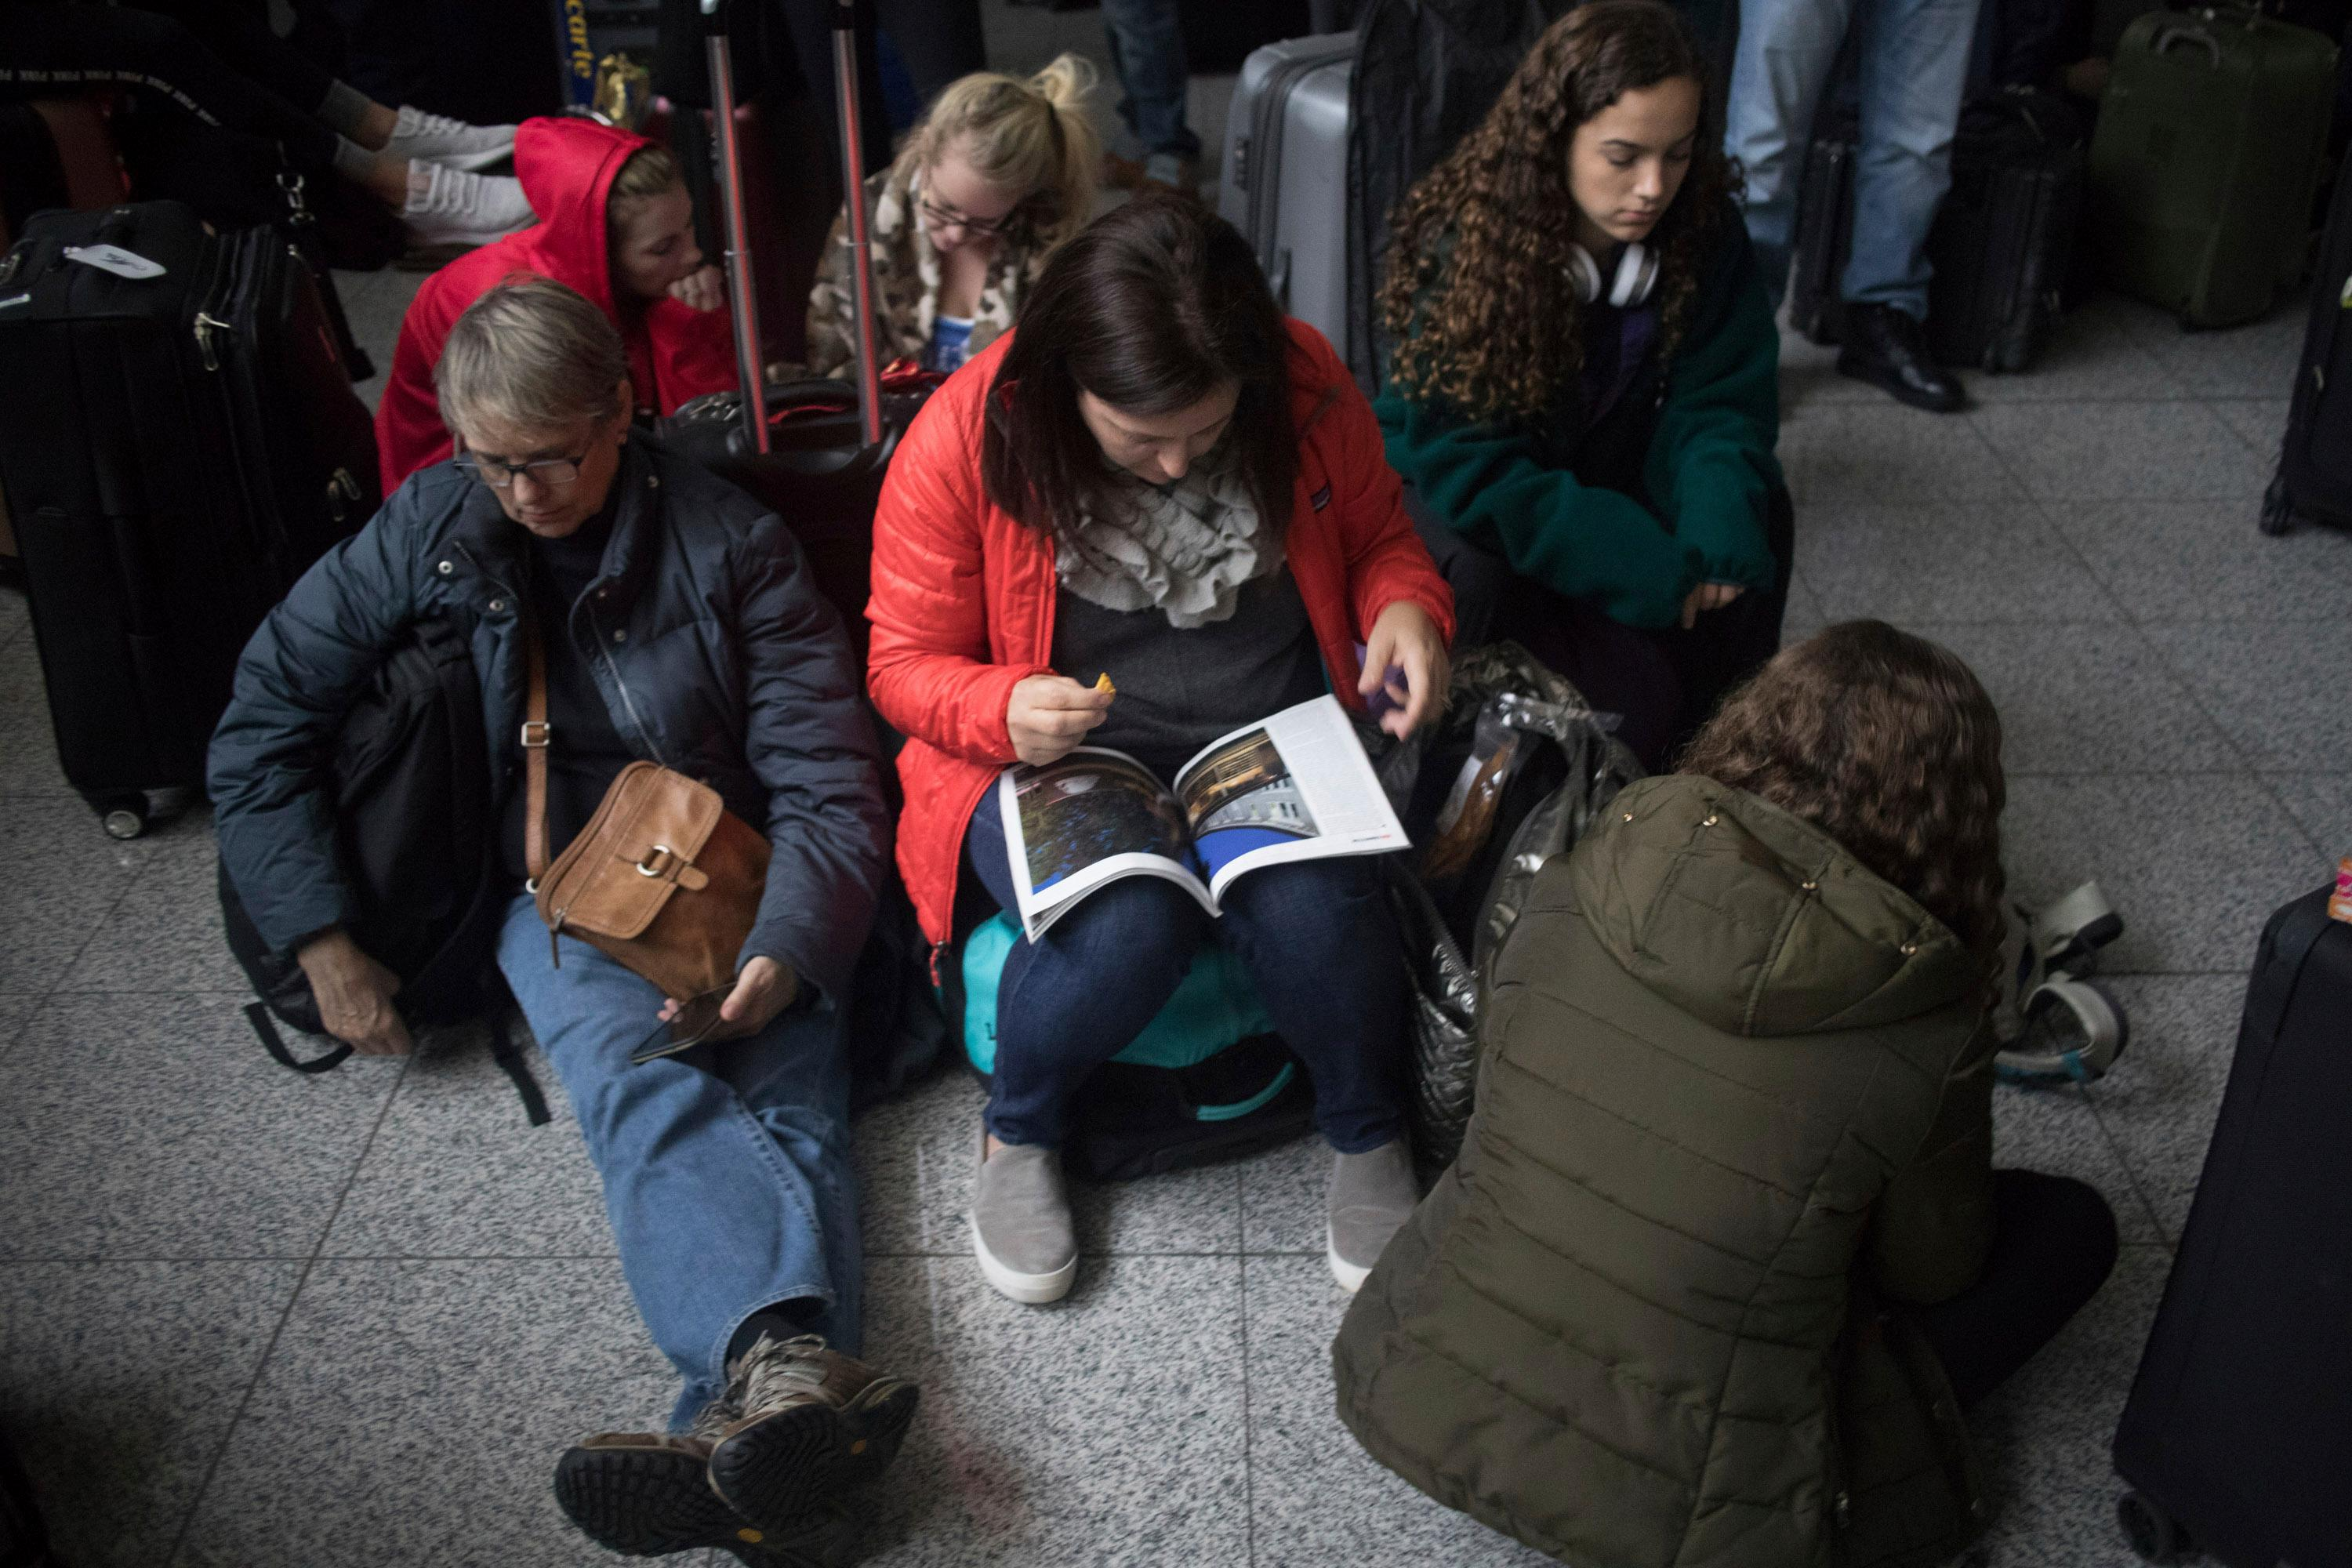 Passengers wait for the lights to come back on at Hartsfield-Jackson International Airport, Sunday, Dec. 17, 2017, in Atlanta. A sudden power outage at the Hartsfield-Jackson Atlanta International Airport on Sunday grounded scores of flights and passengers during one of the busiest travel times of the year. (Steve Schaefer/Atlanta Journal-Constitution via AP)